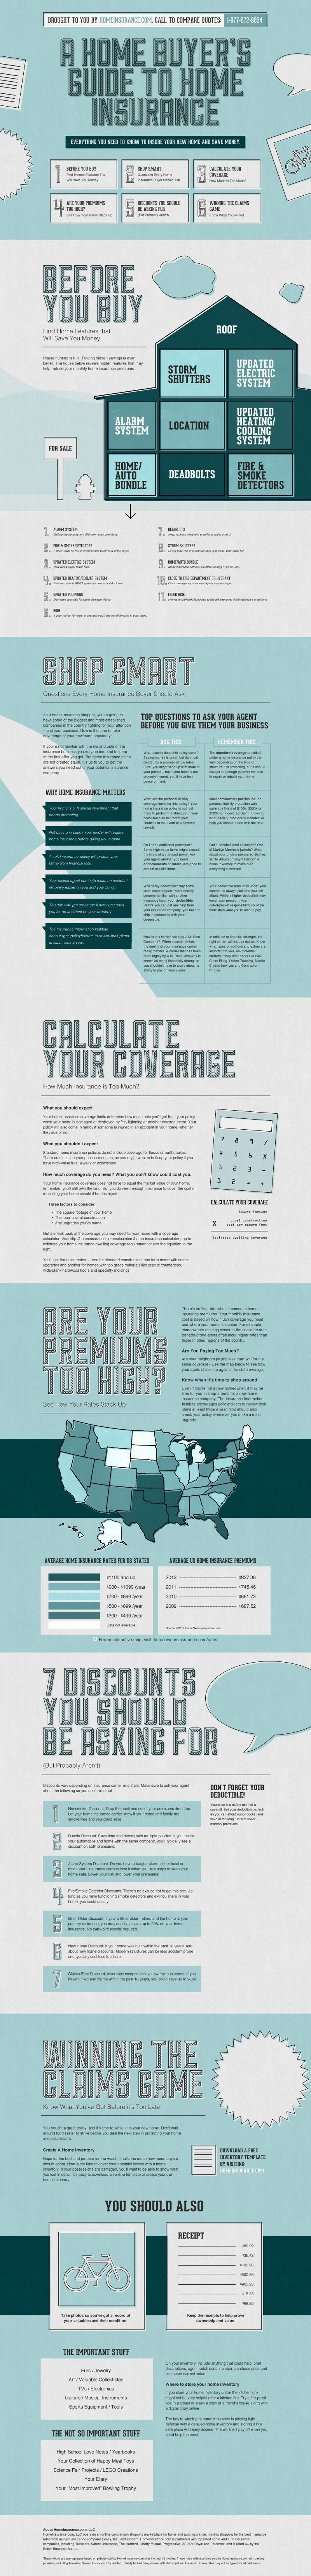 This infographic reveals which features of a home impact